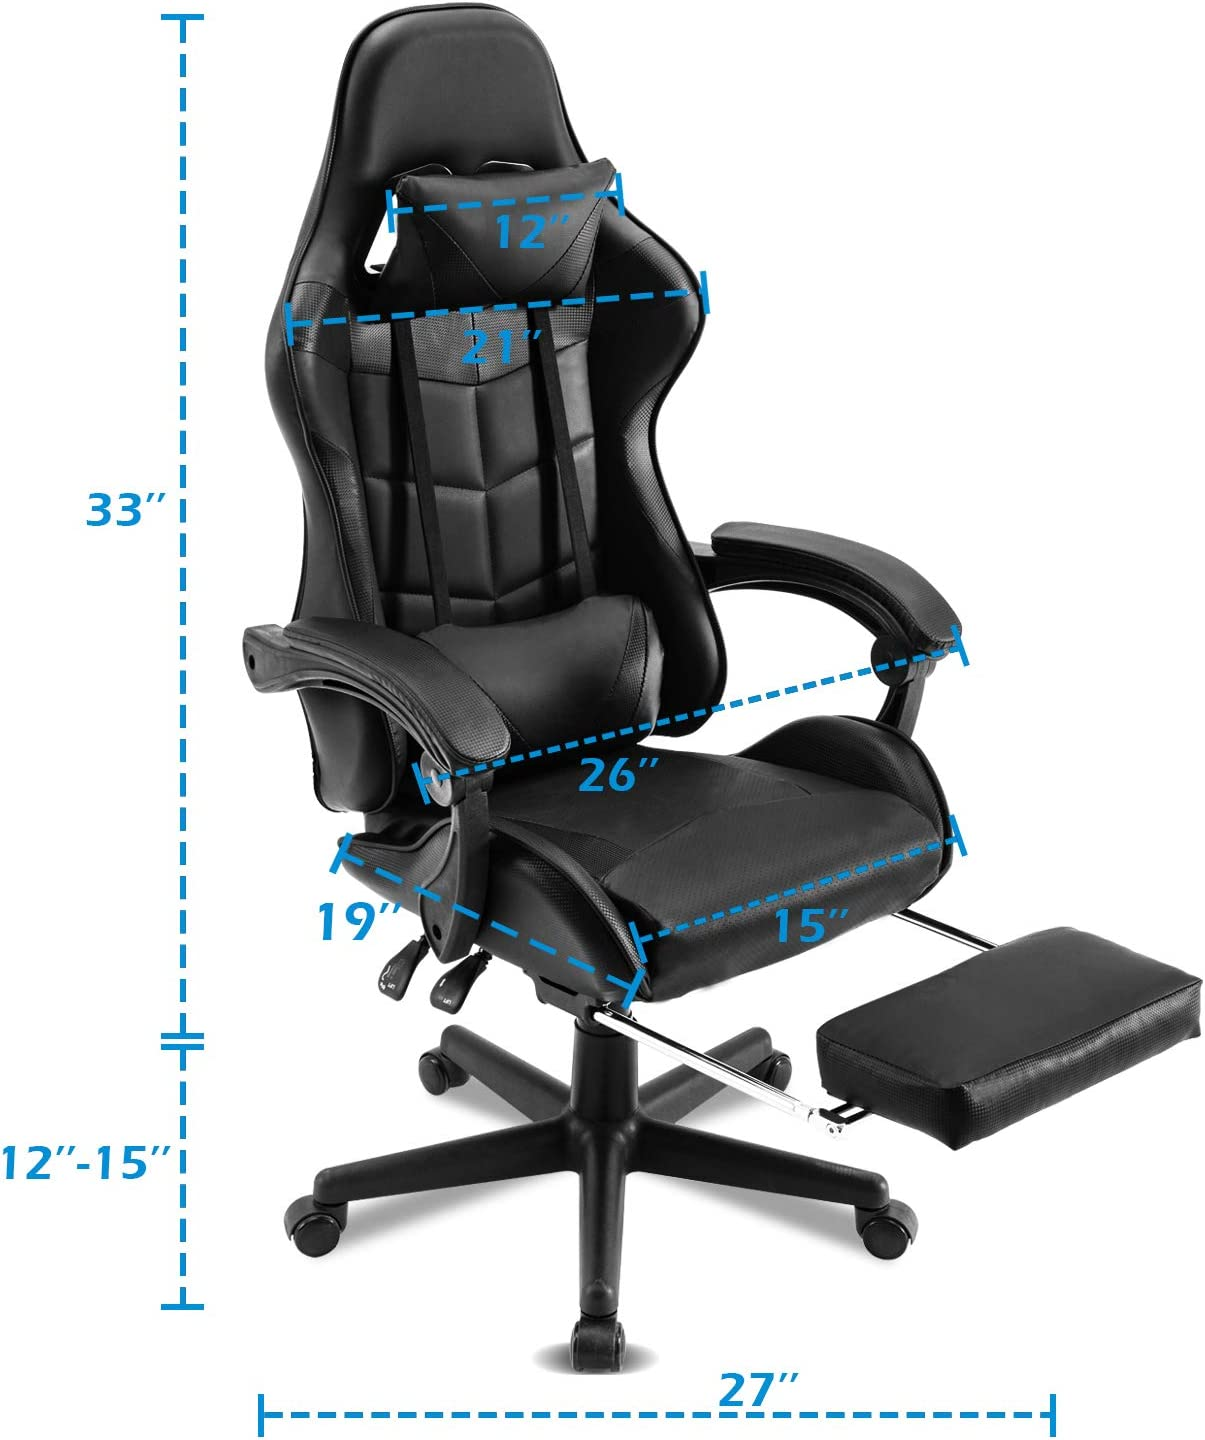 Matte Golden Soontrans Ergonomic Office Chair PC Gaming Chair Racing Chair for Gaming,Computer Chair,E-Sports Chair with High-Back,Adjustable Headrest and Lumbar Support,Retractable Footrest